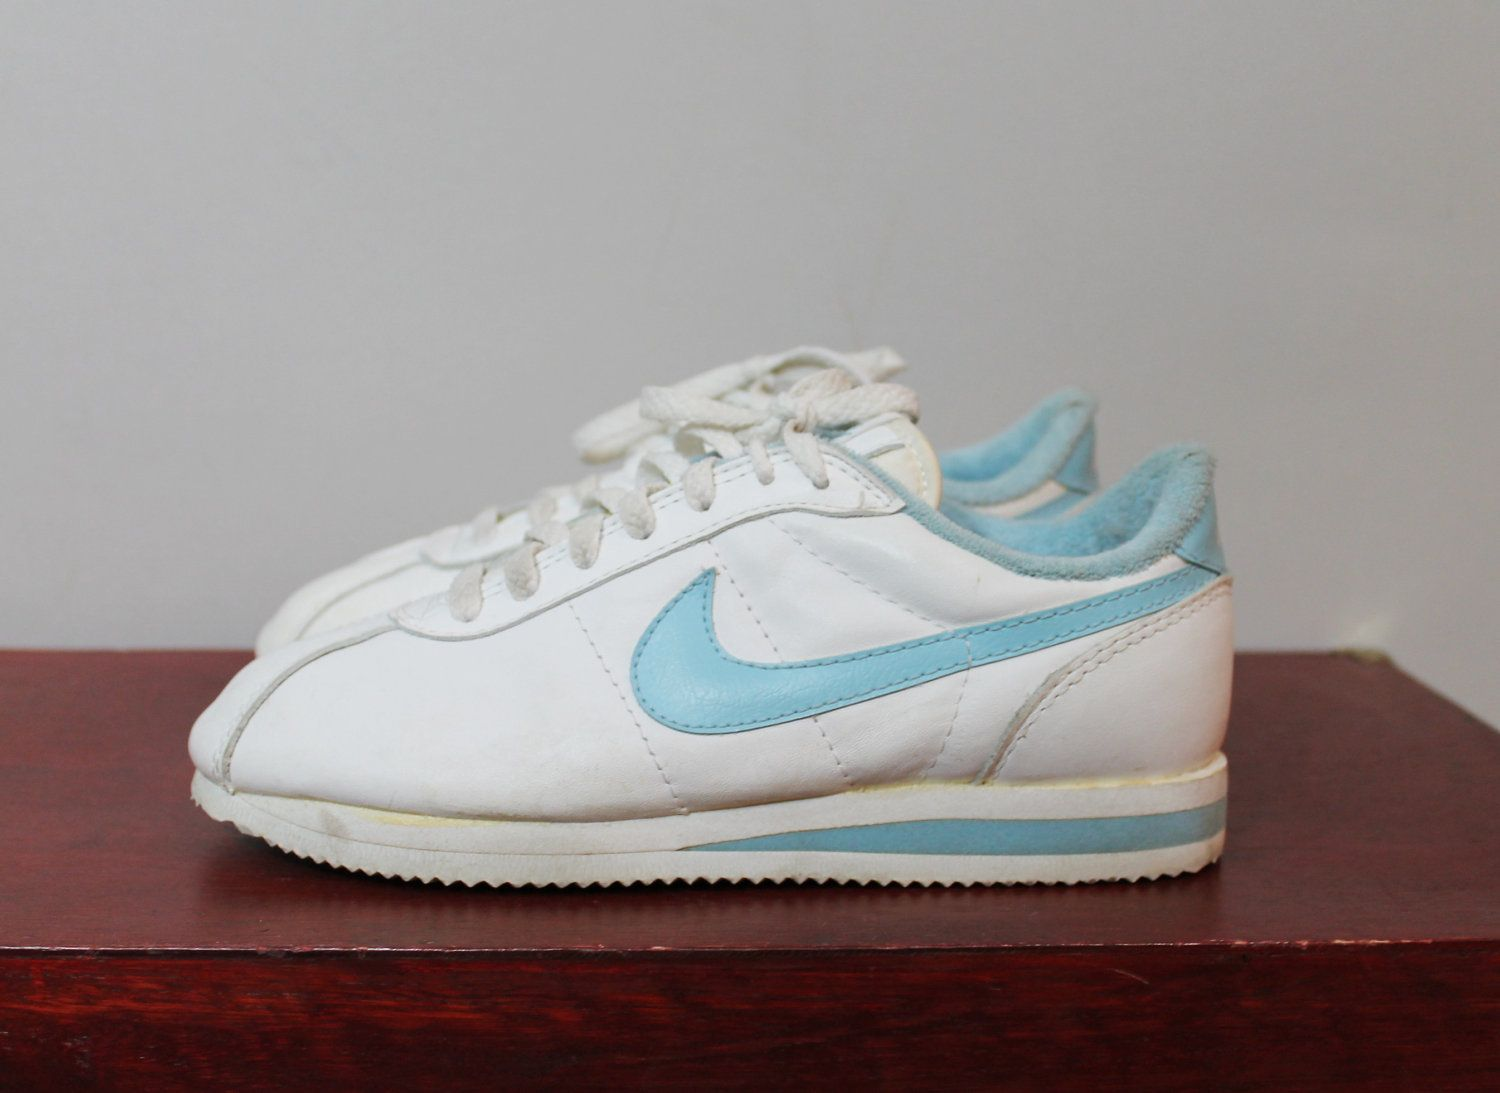 f2a2c0a44ced 80s NIKE Tennis Shoes Leather Sneakers Low Top Vintage 1980s Size 7 ...